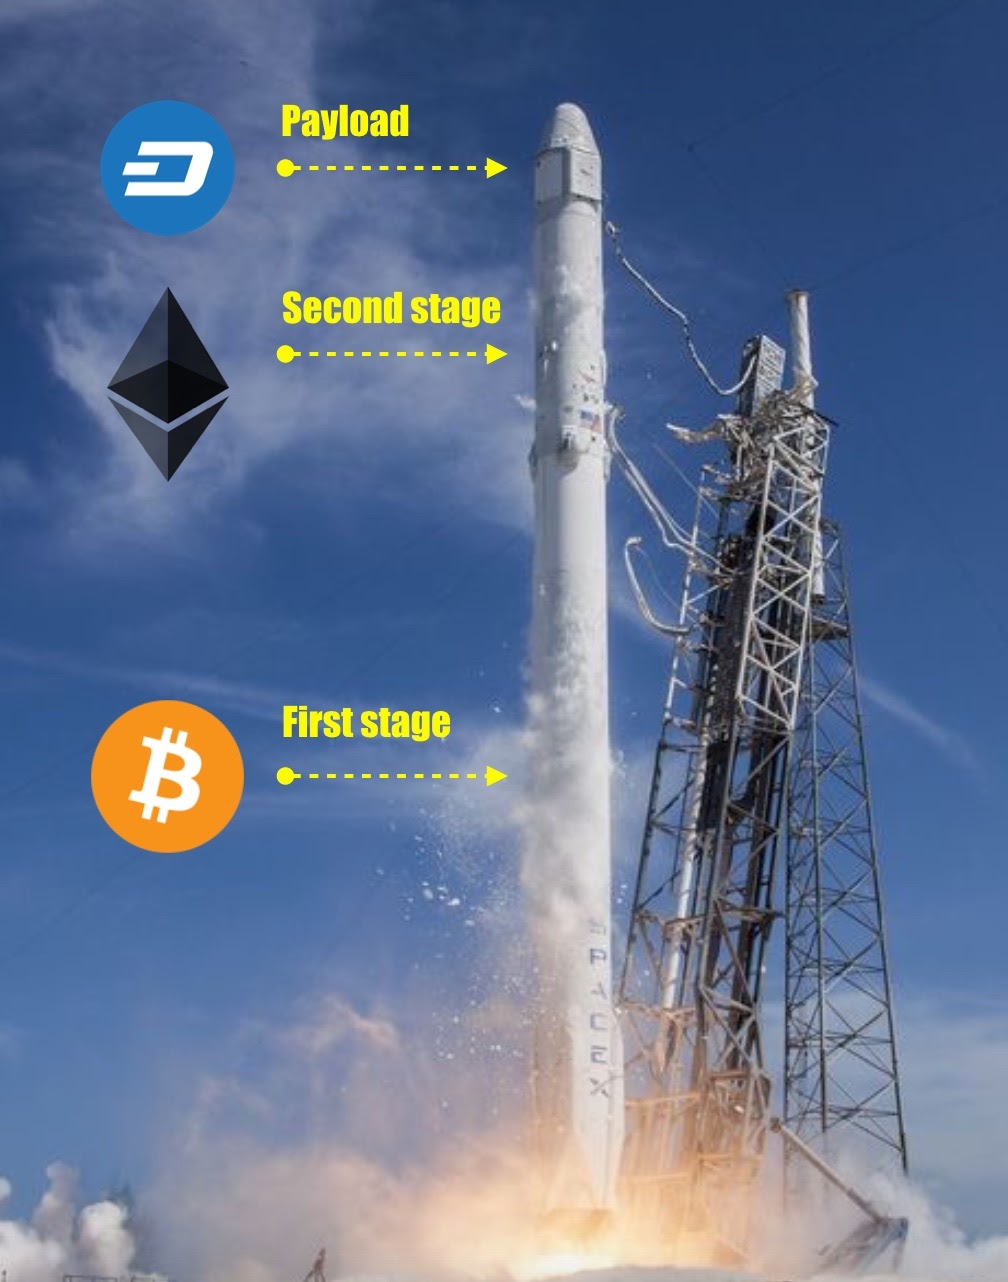 #CRYPTOTRIFECTA - cover